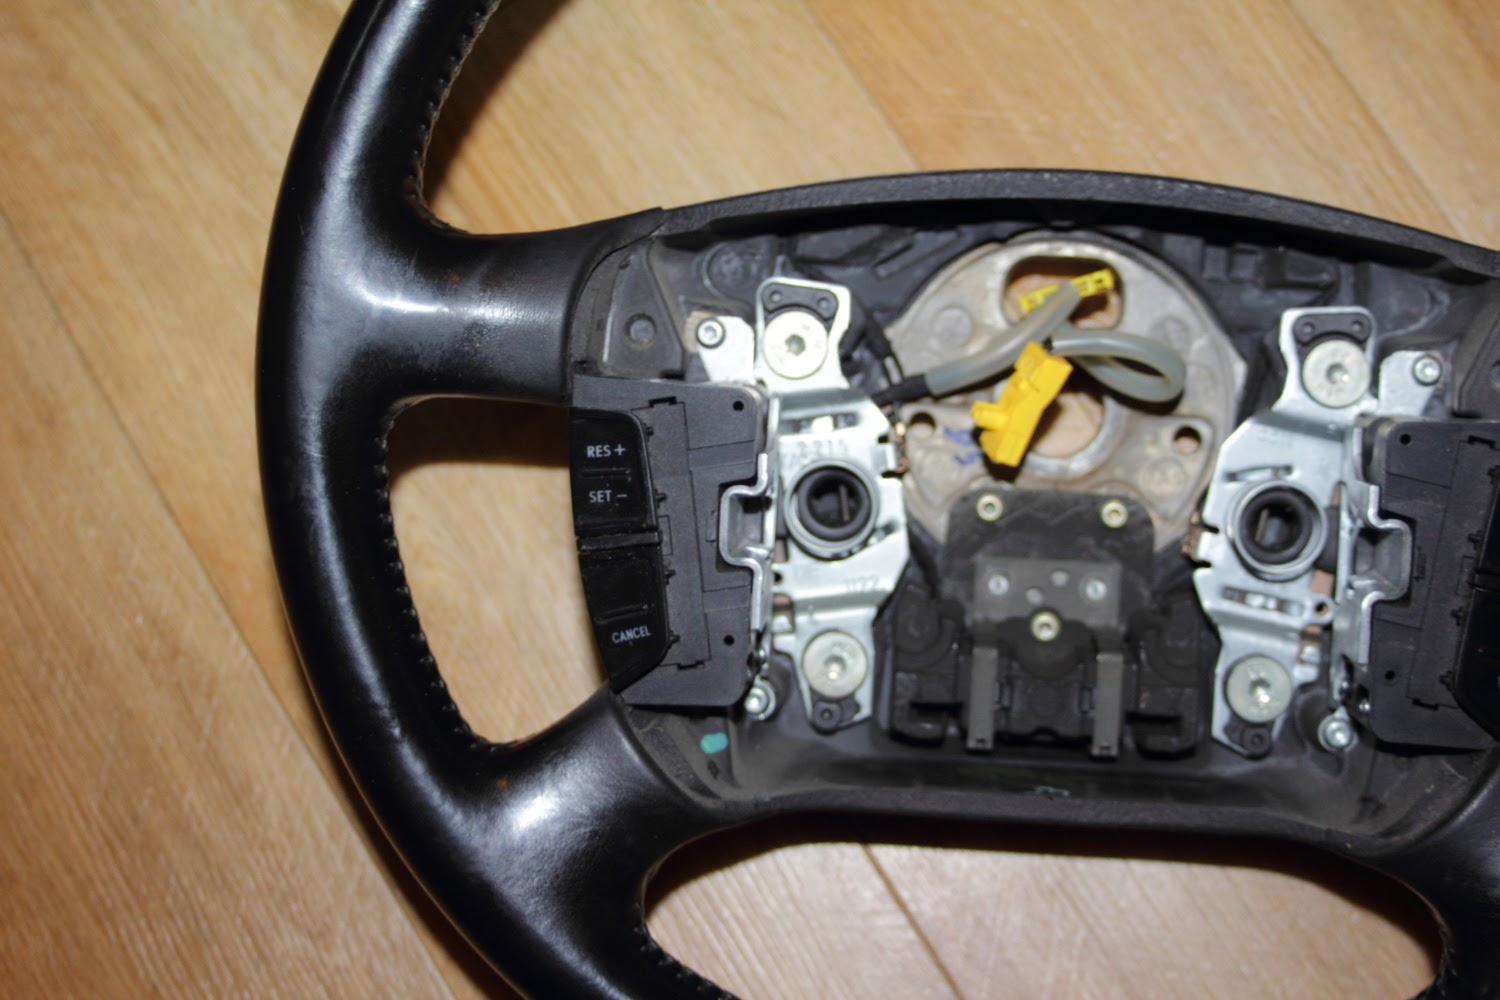 VW Golf Steering wheel airbag connectors